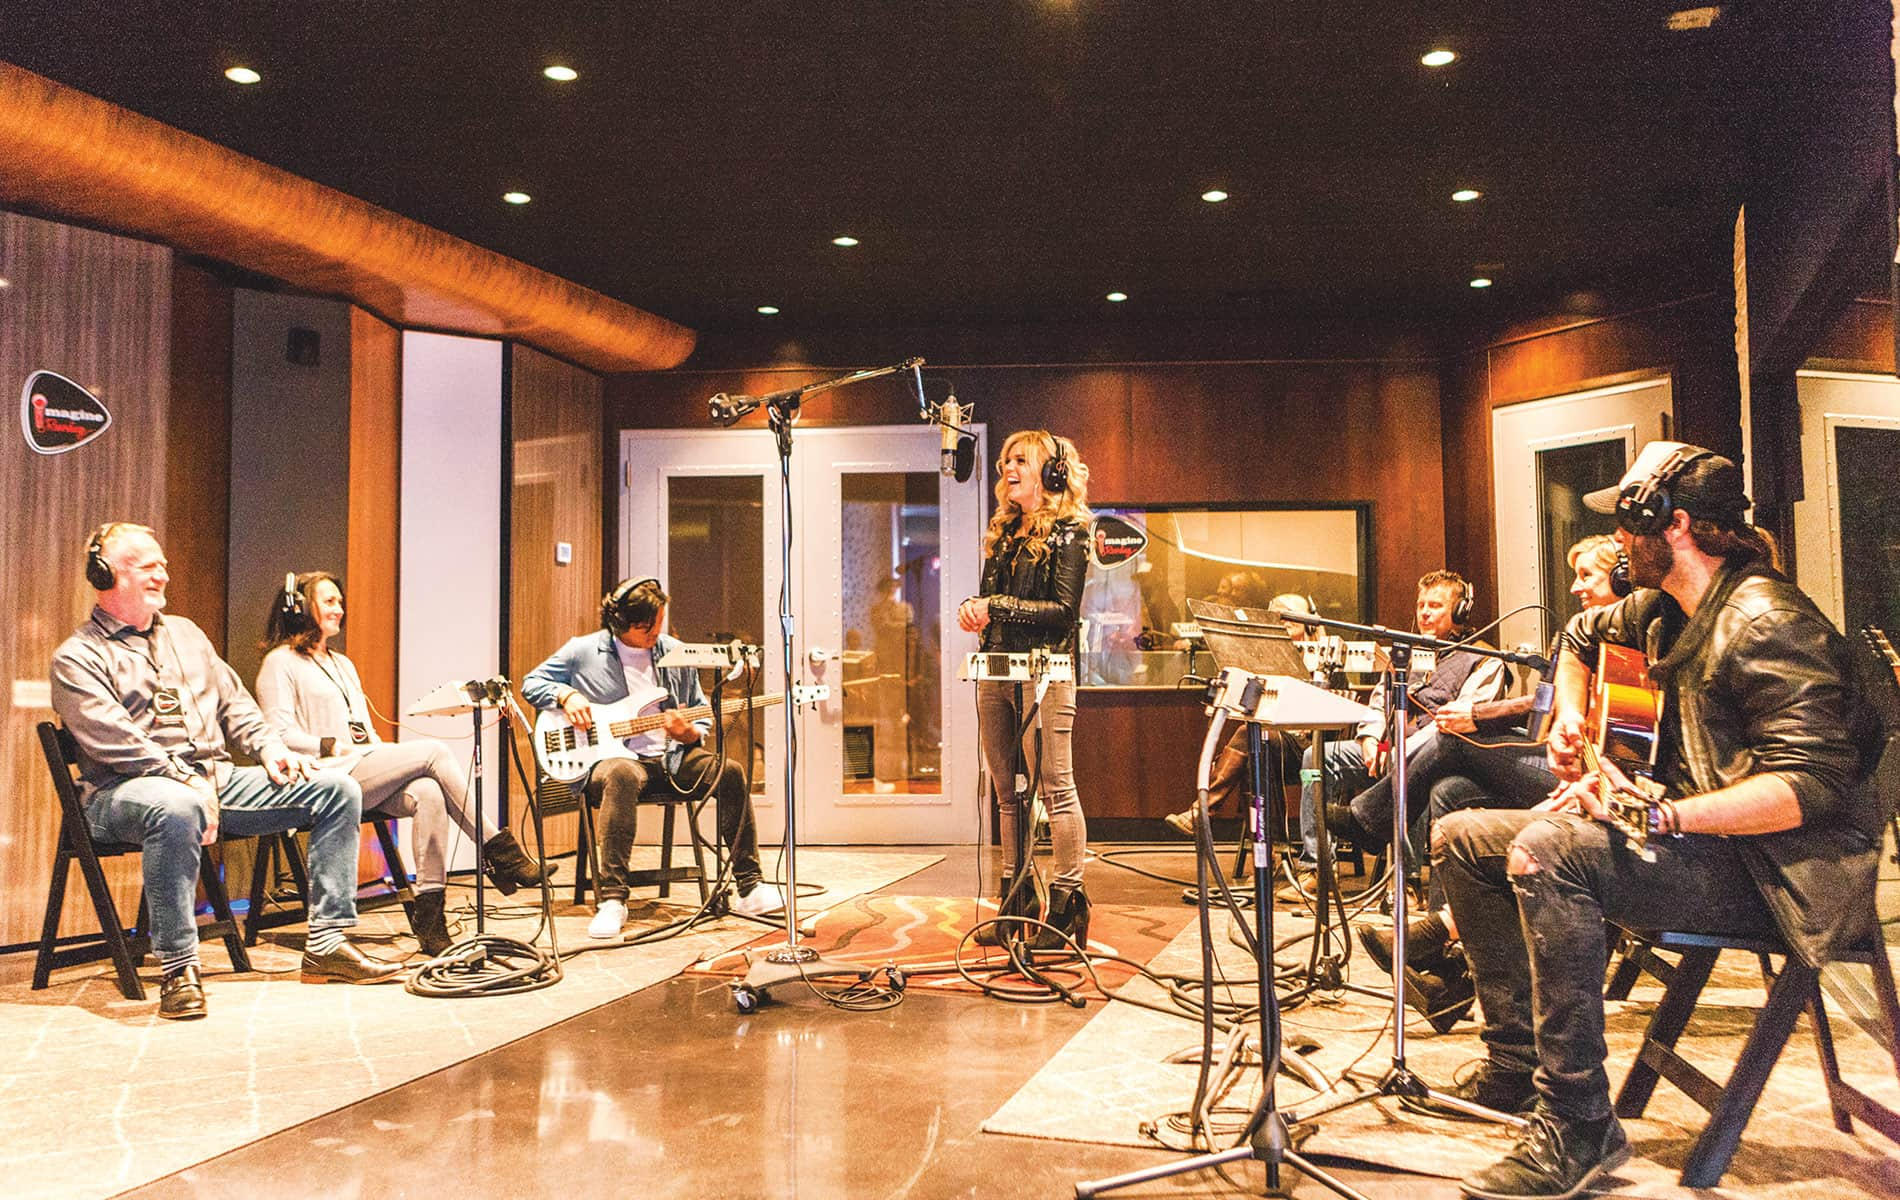 Recording artist Natalie Stovall sings a new song during a live Imagine Recordings sessionwith studio musicians while attendees listen through headphones.